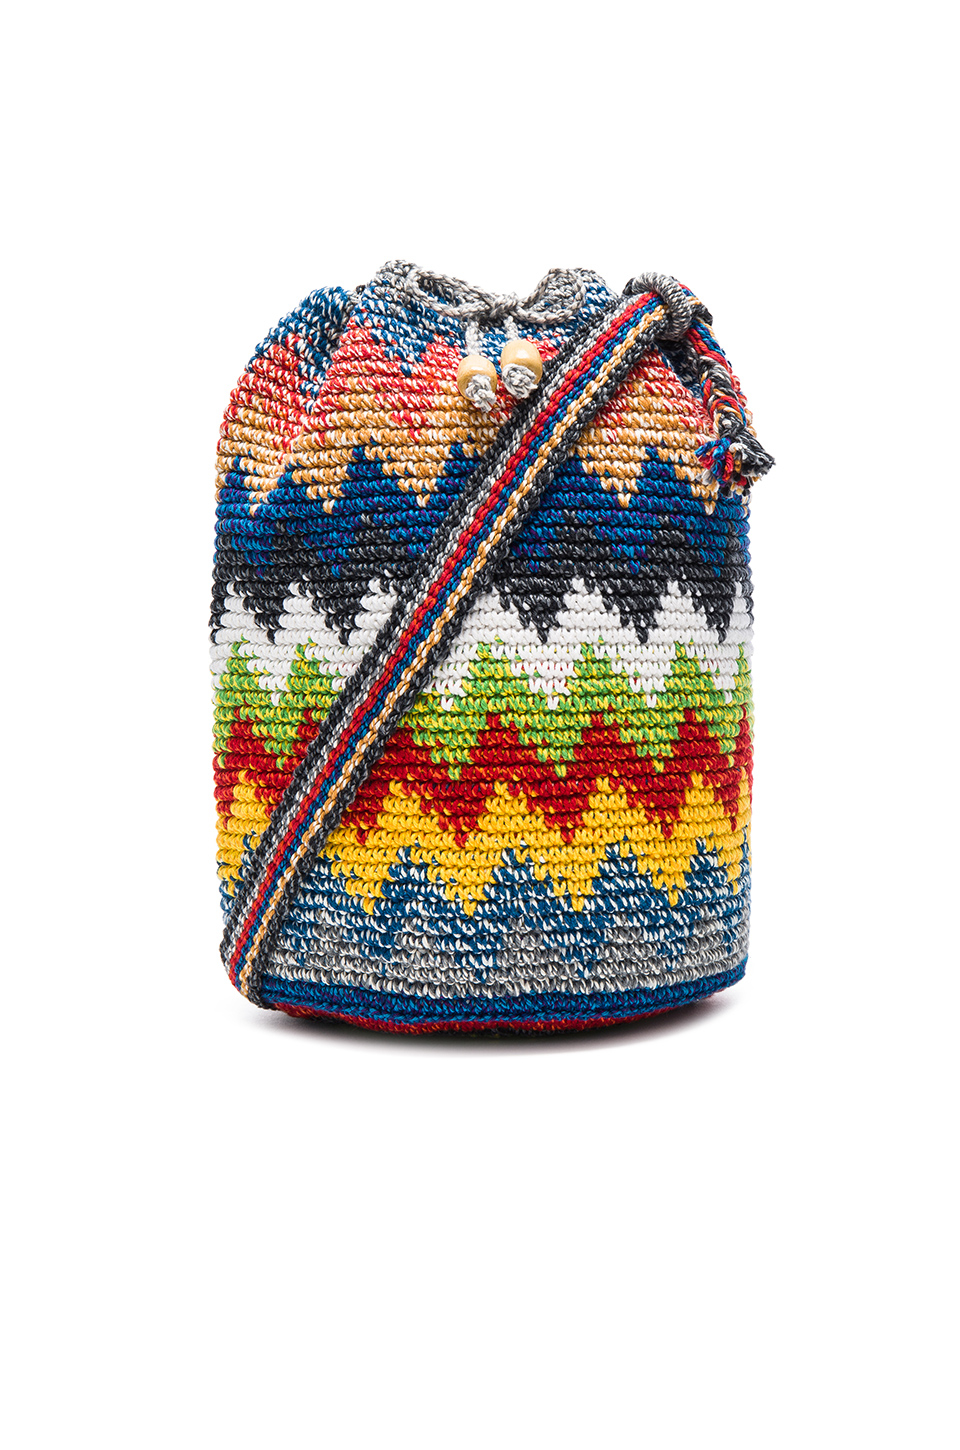 Crochet Bucket Bag : Stela 9 Crochet Bucket Bag in Multicolor Lyst